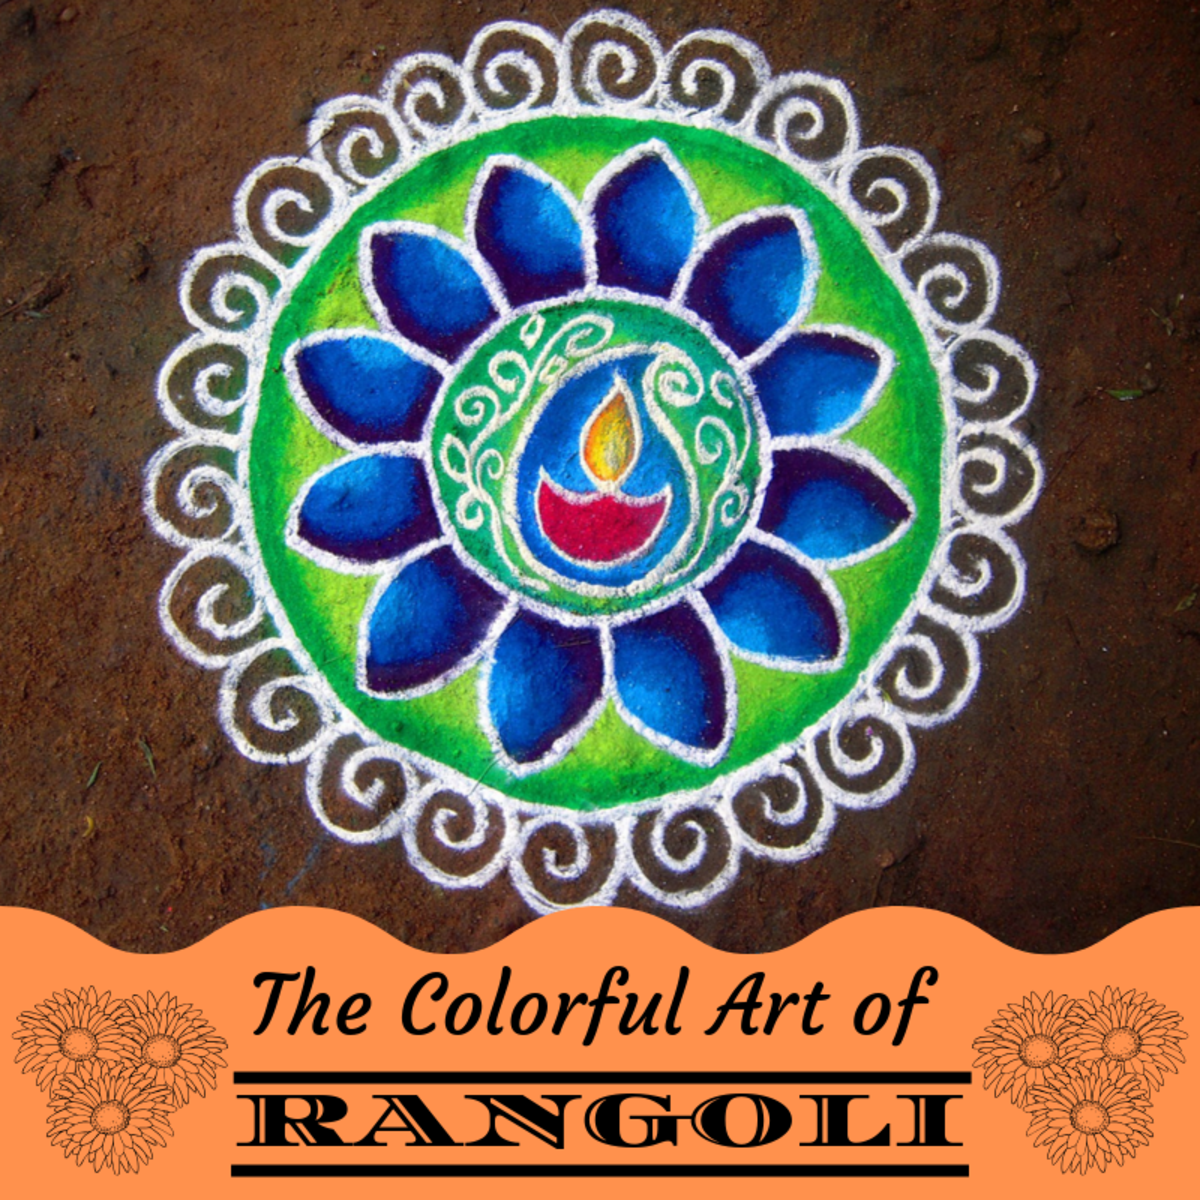 Rangoli is a traditional Indian art form practiced during Diwali and during other celebratory occasions.